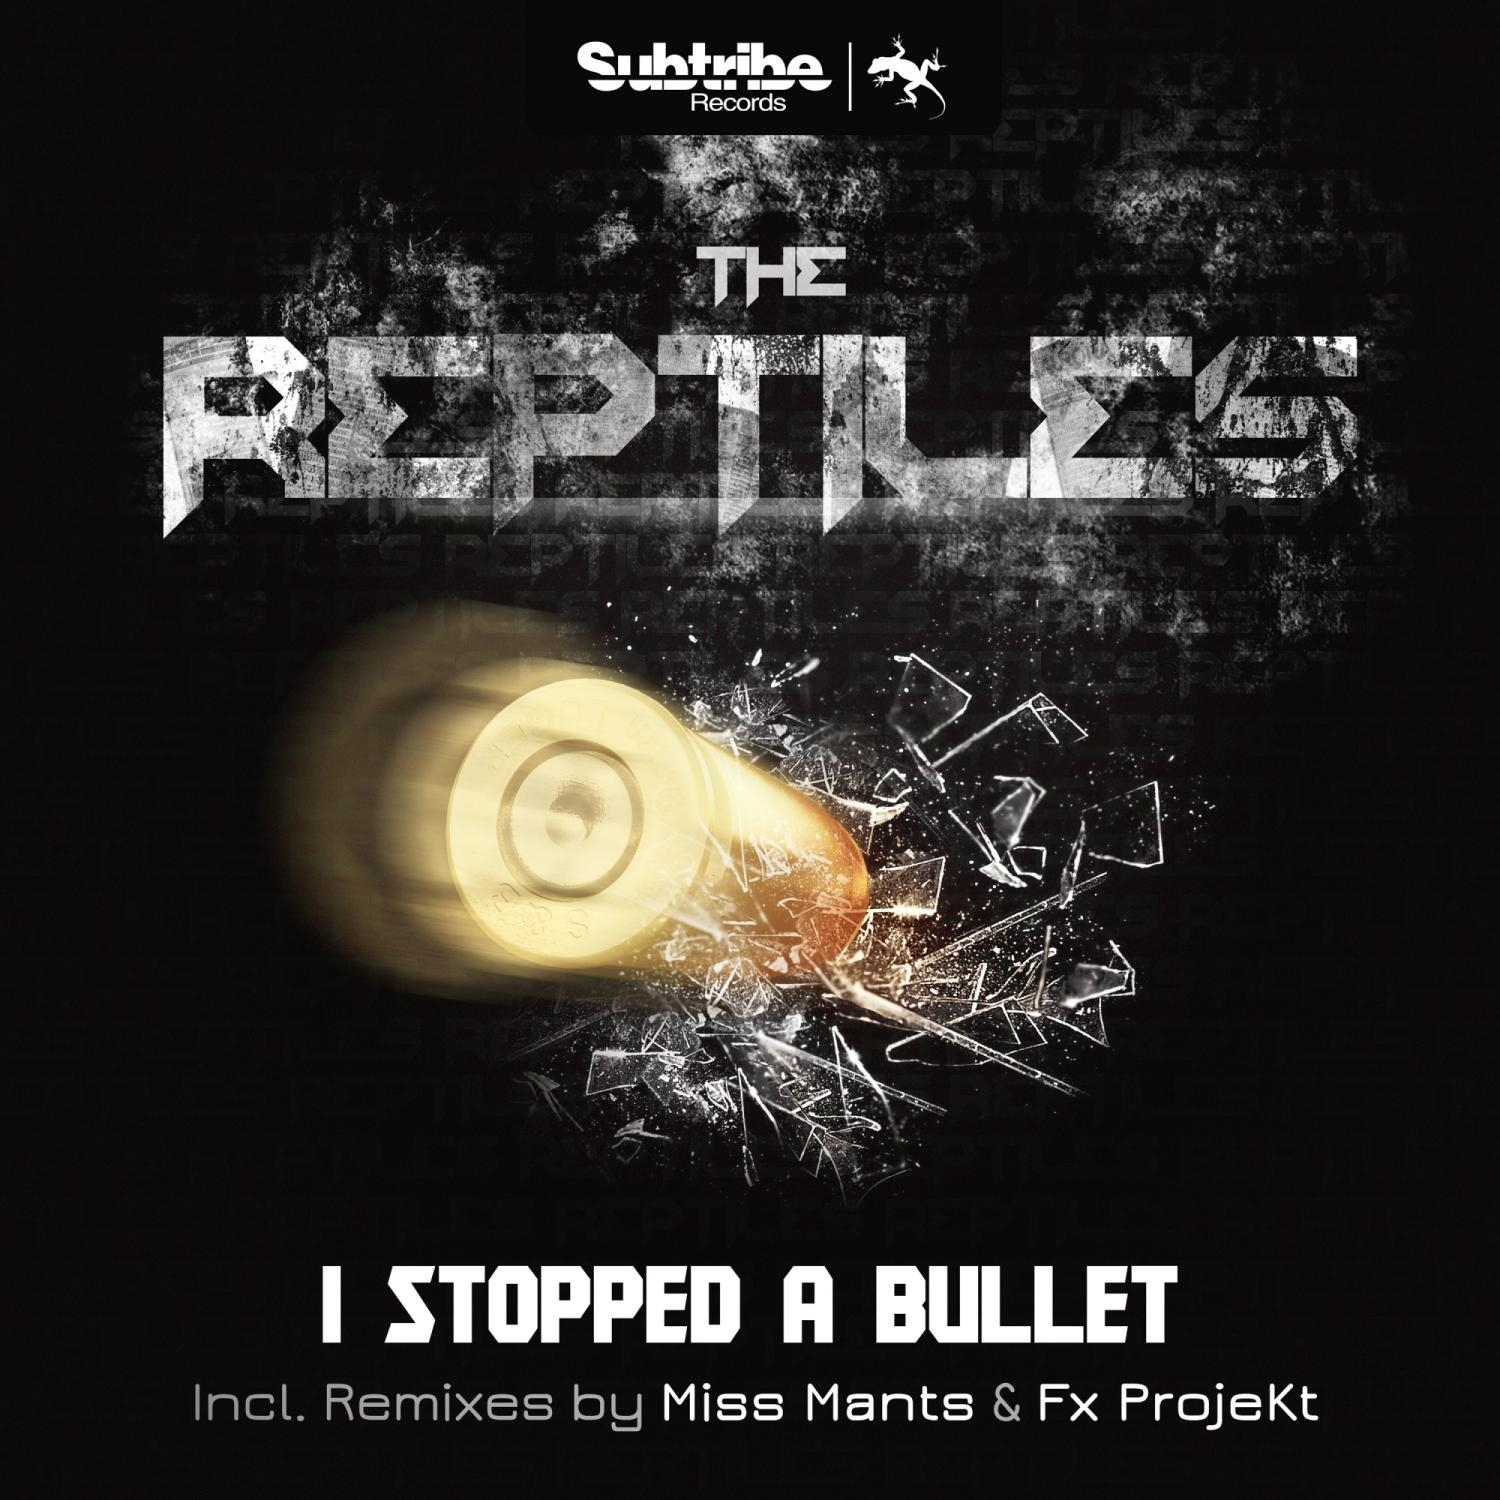 The Reptiles - I Stopped A Bullet (Original Mix)